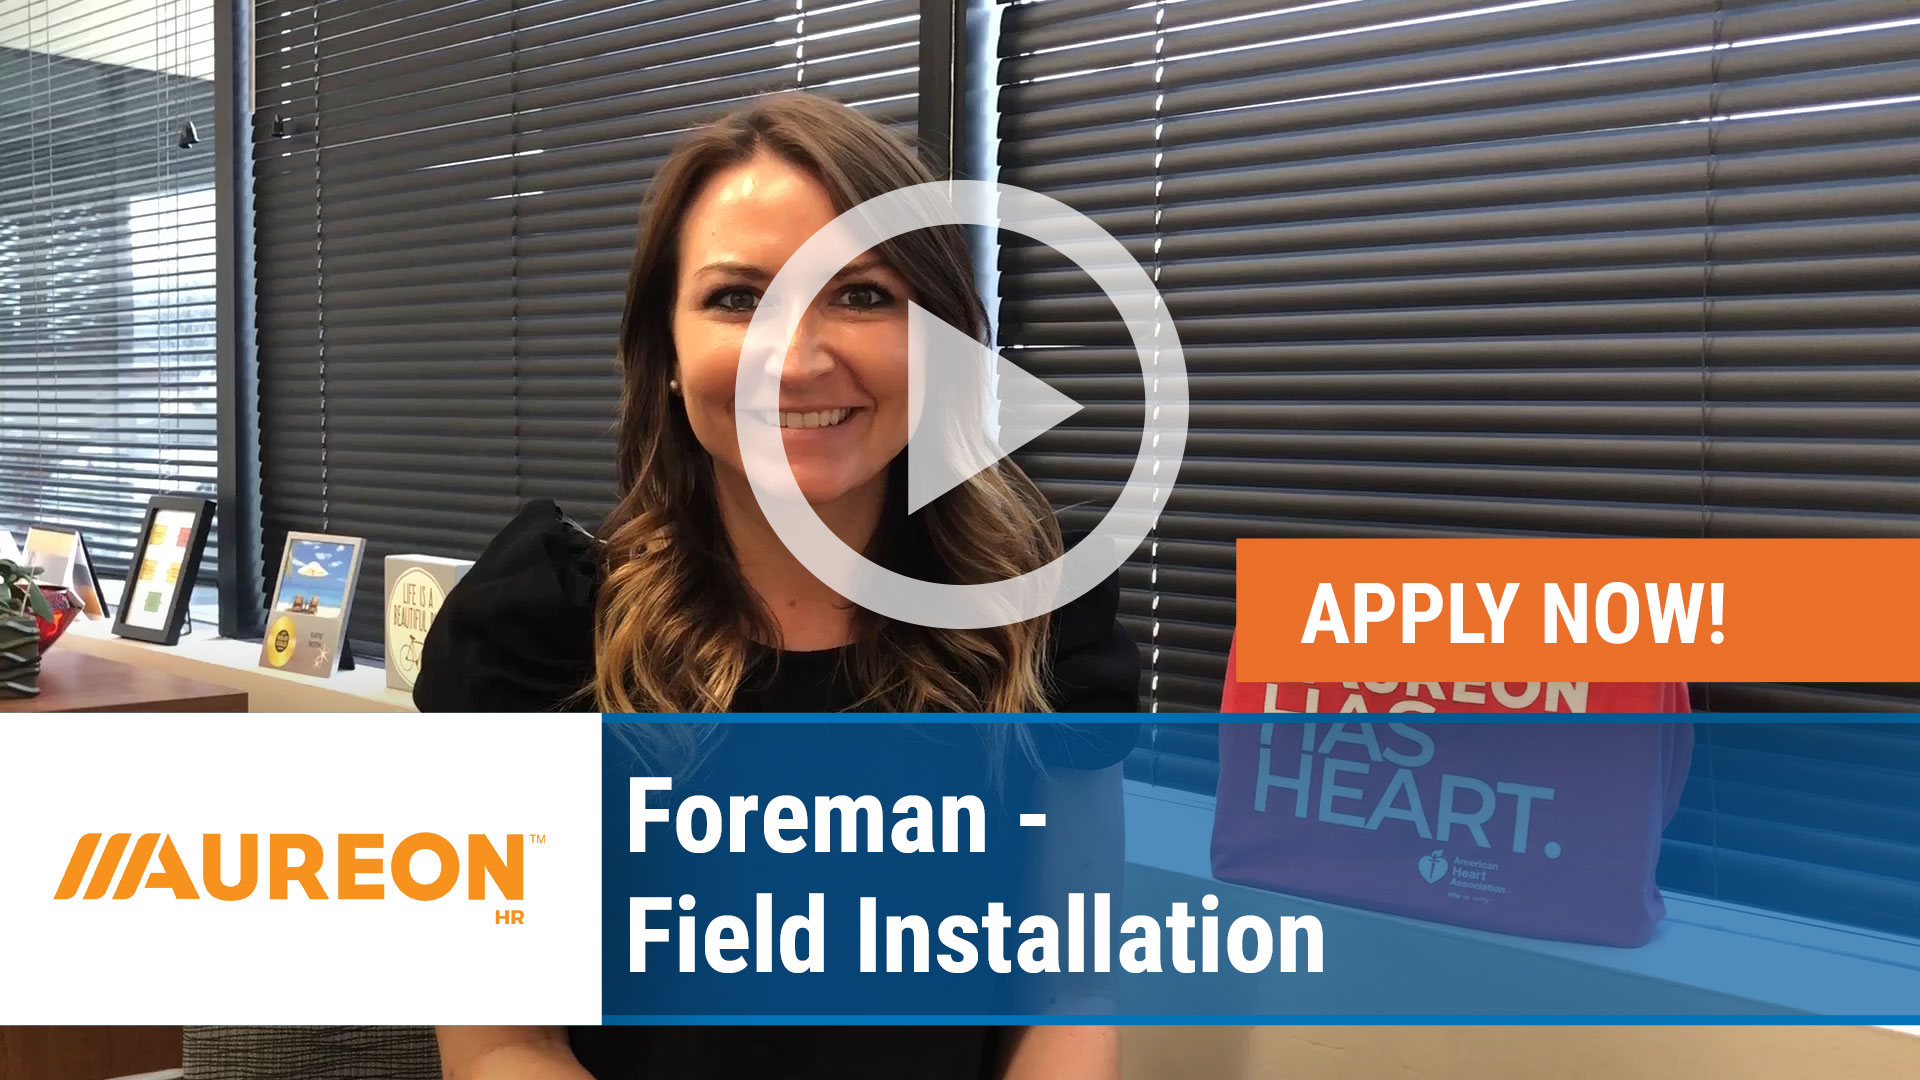 Watch our careers video for available job opening Foreman - Field Installation in Des Moines,  IA